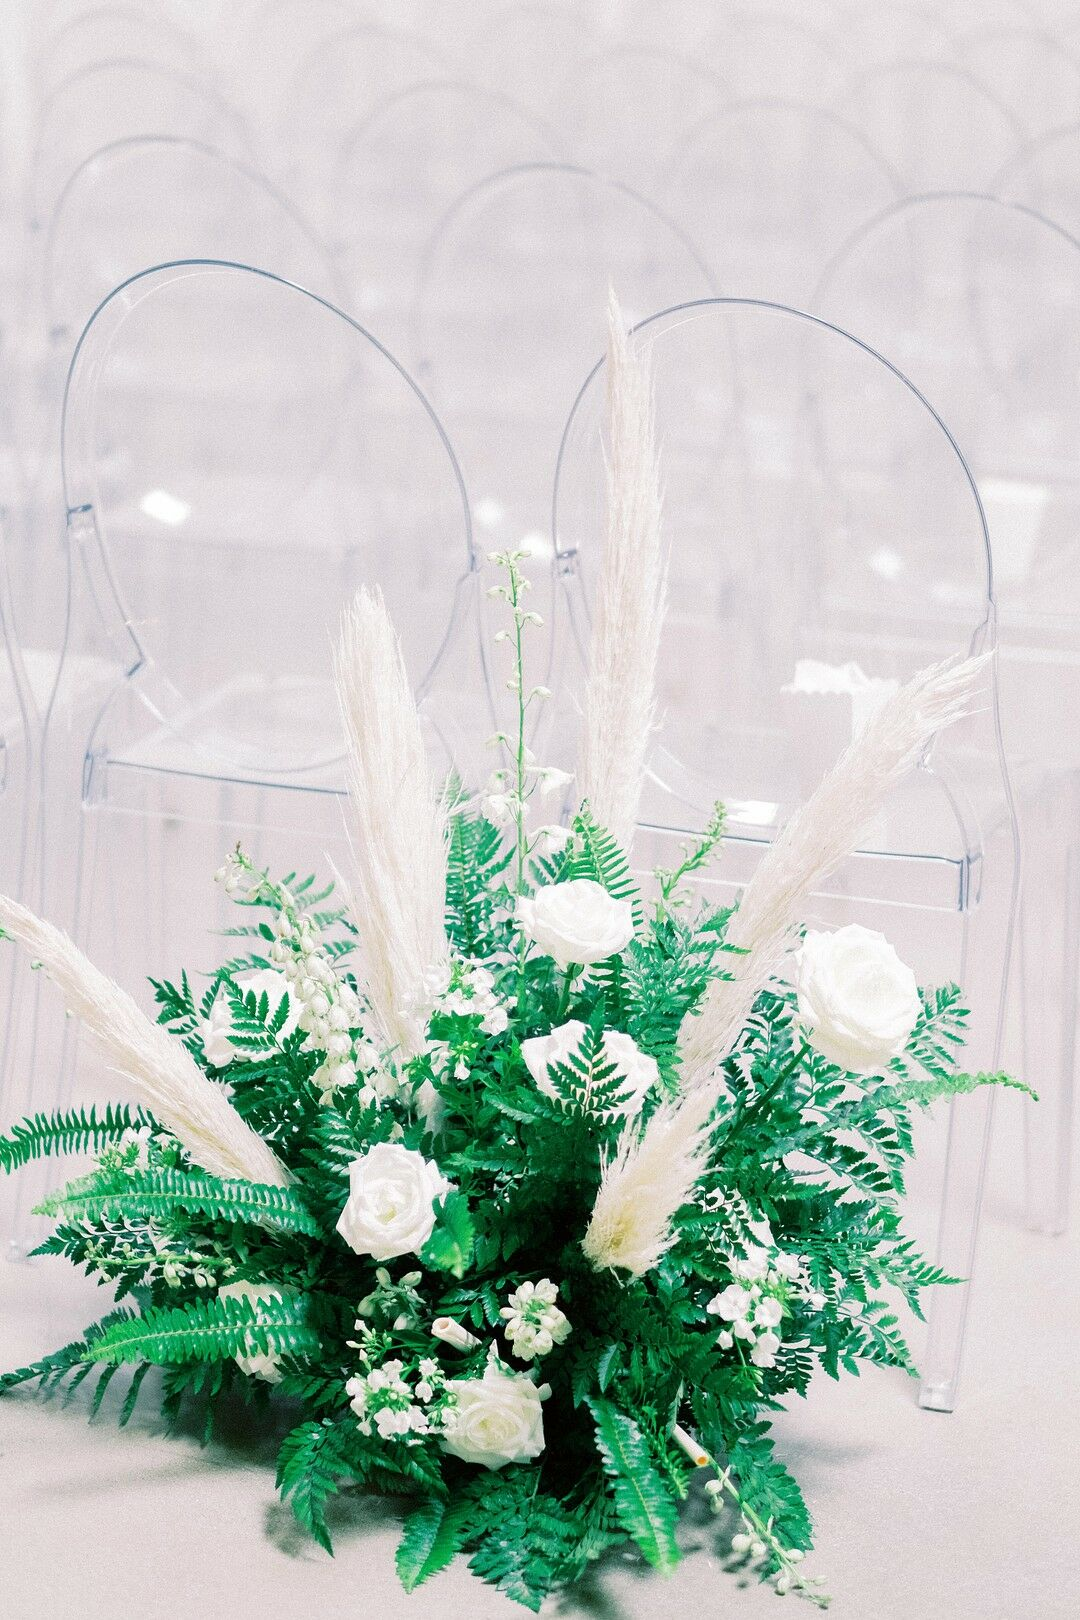 Modern Flower Arrangement With White Roses White Grasses And Leaves